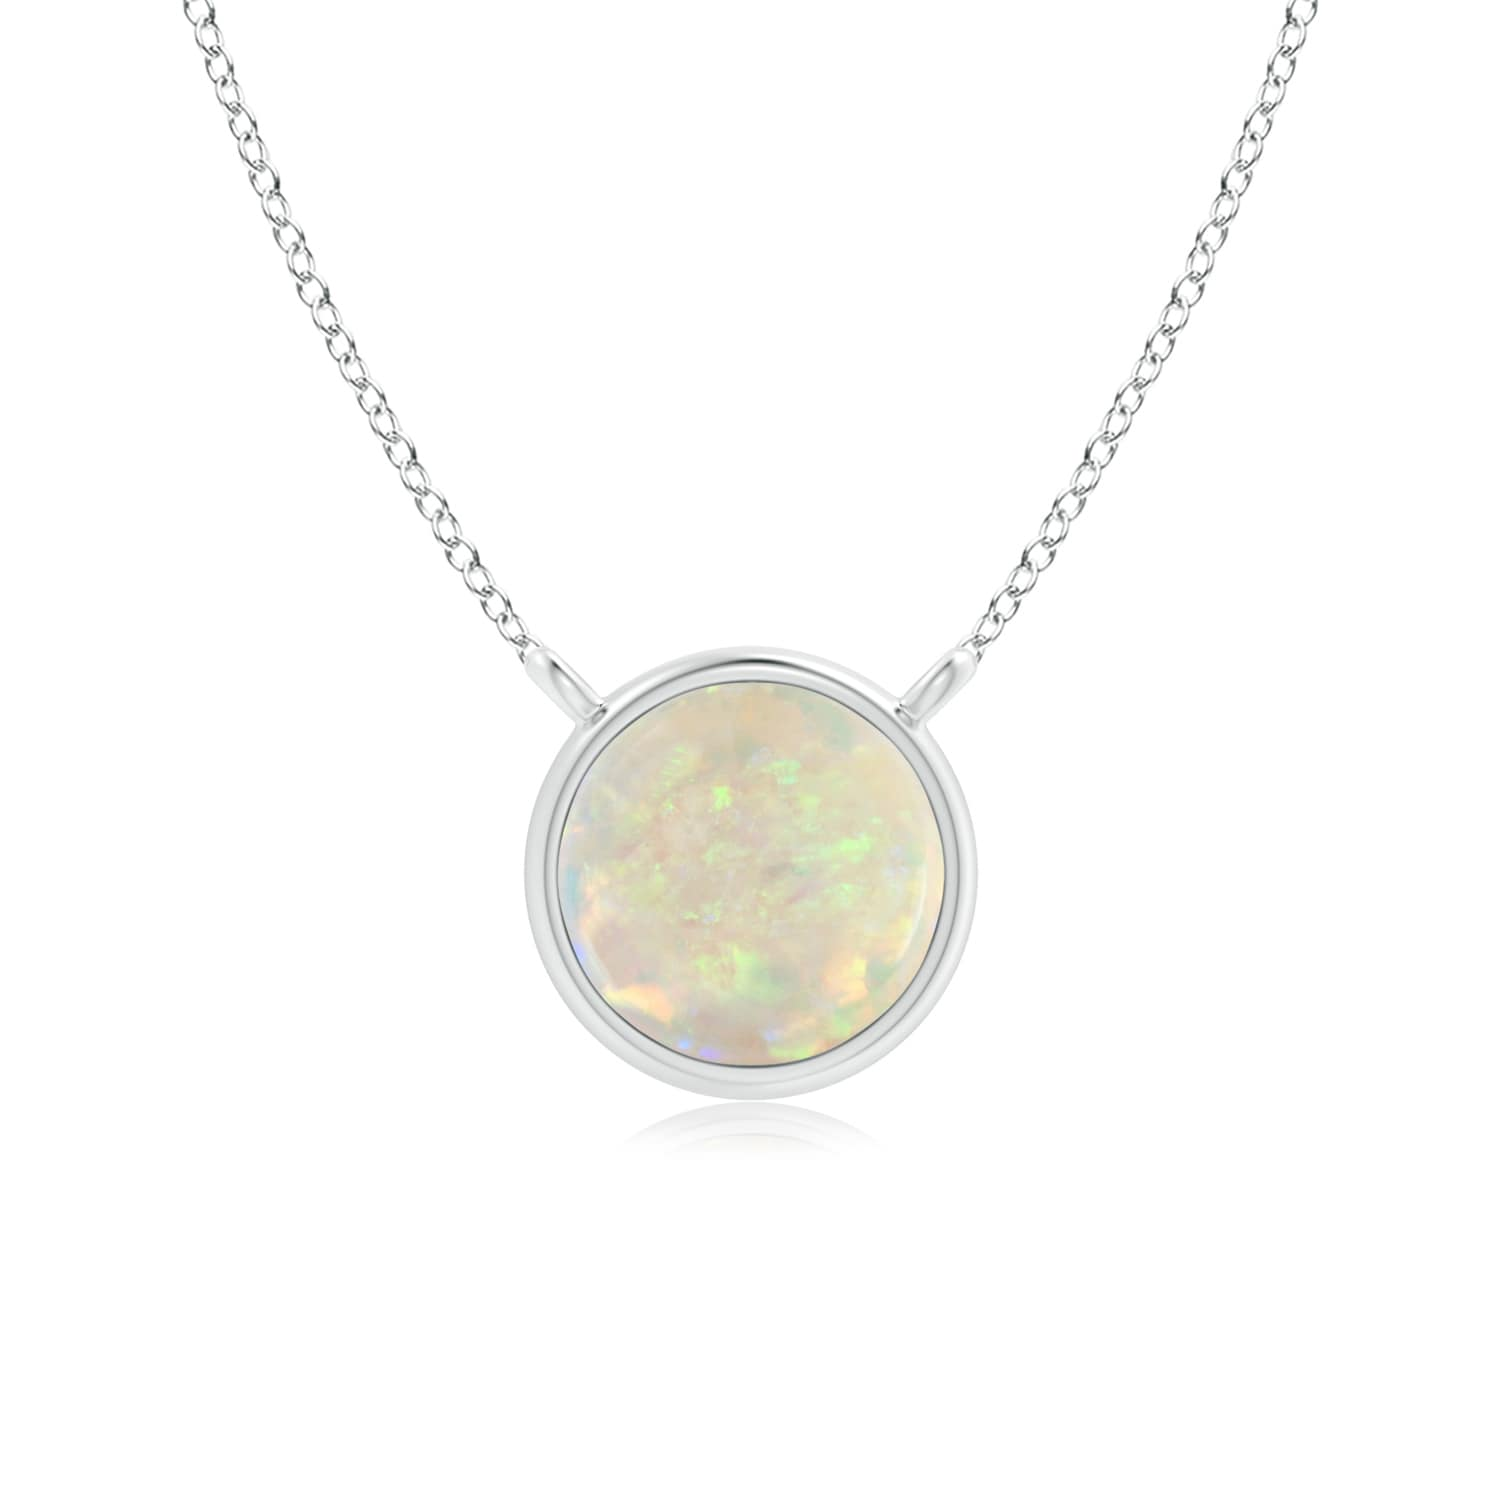 Mother's Day Jewelry Necklace Bezel Set Round Opal Solitaire Necklace in 14K Rose Gold (5mm Opal) SP1228OP-RG-AAA-5 by Angara.com